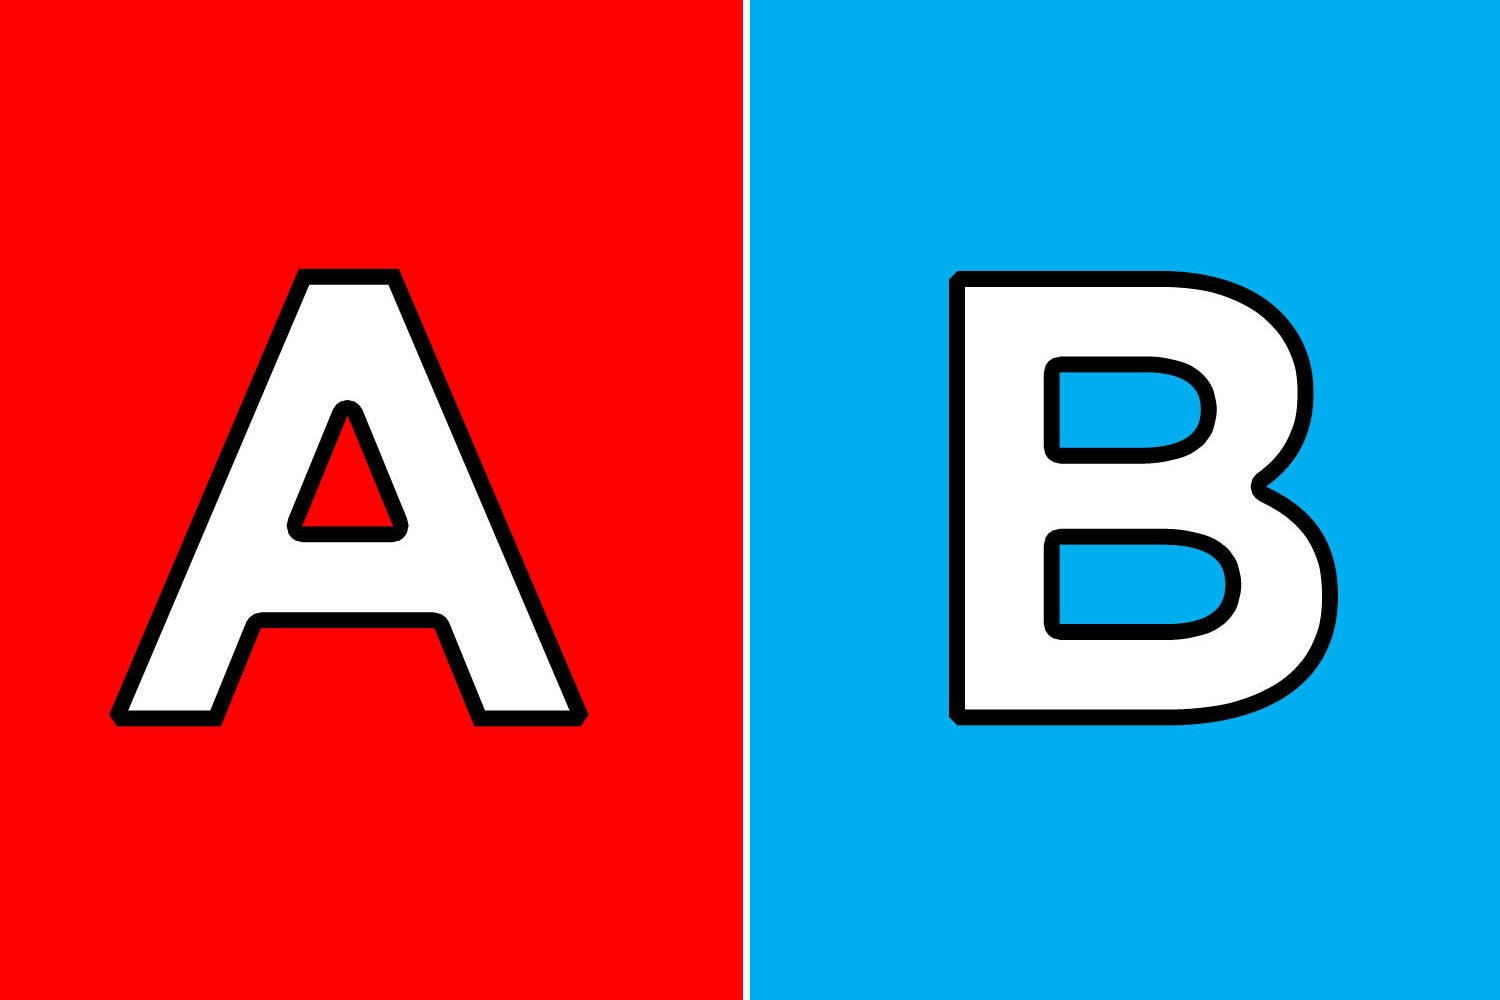 What Color Are These Letters And Numbers To You?